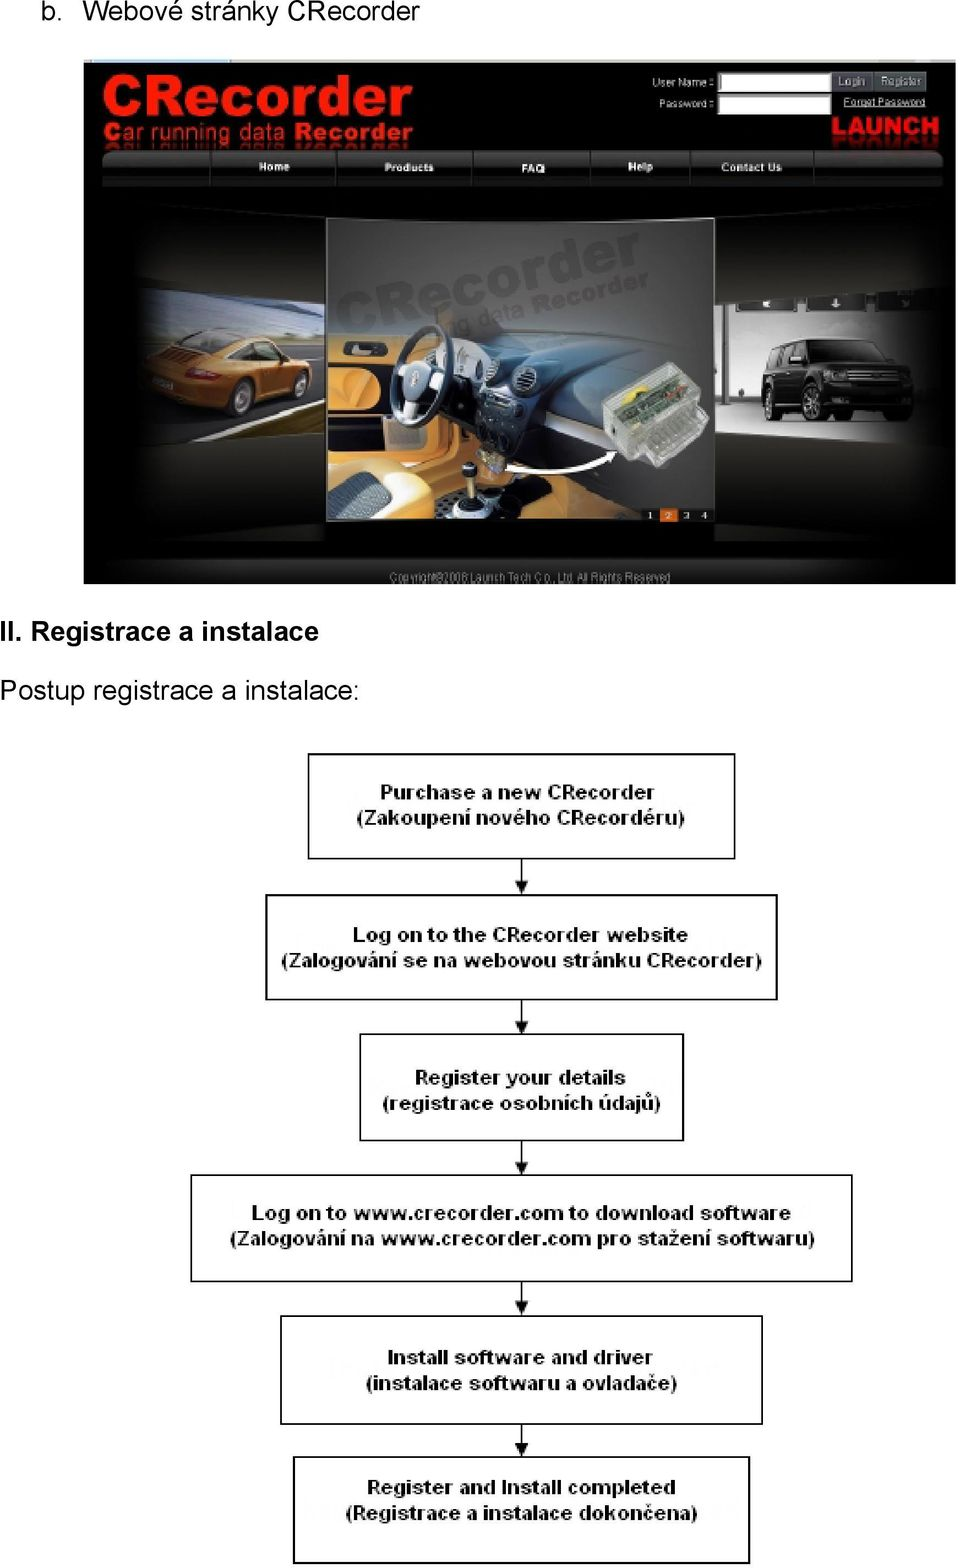 Registrace a